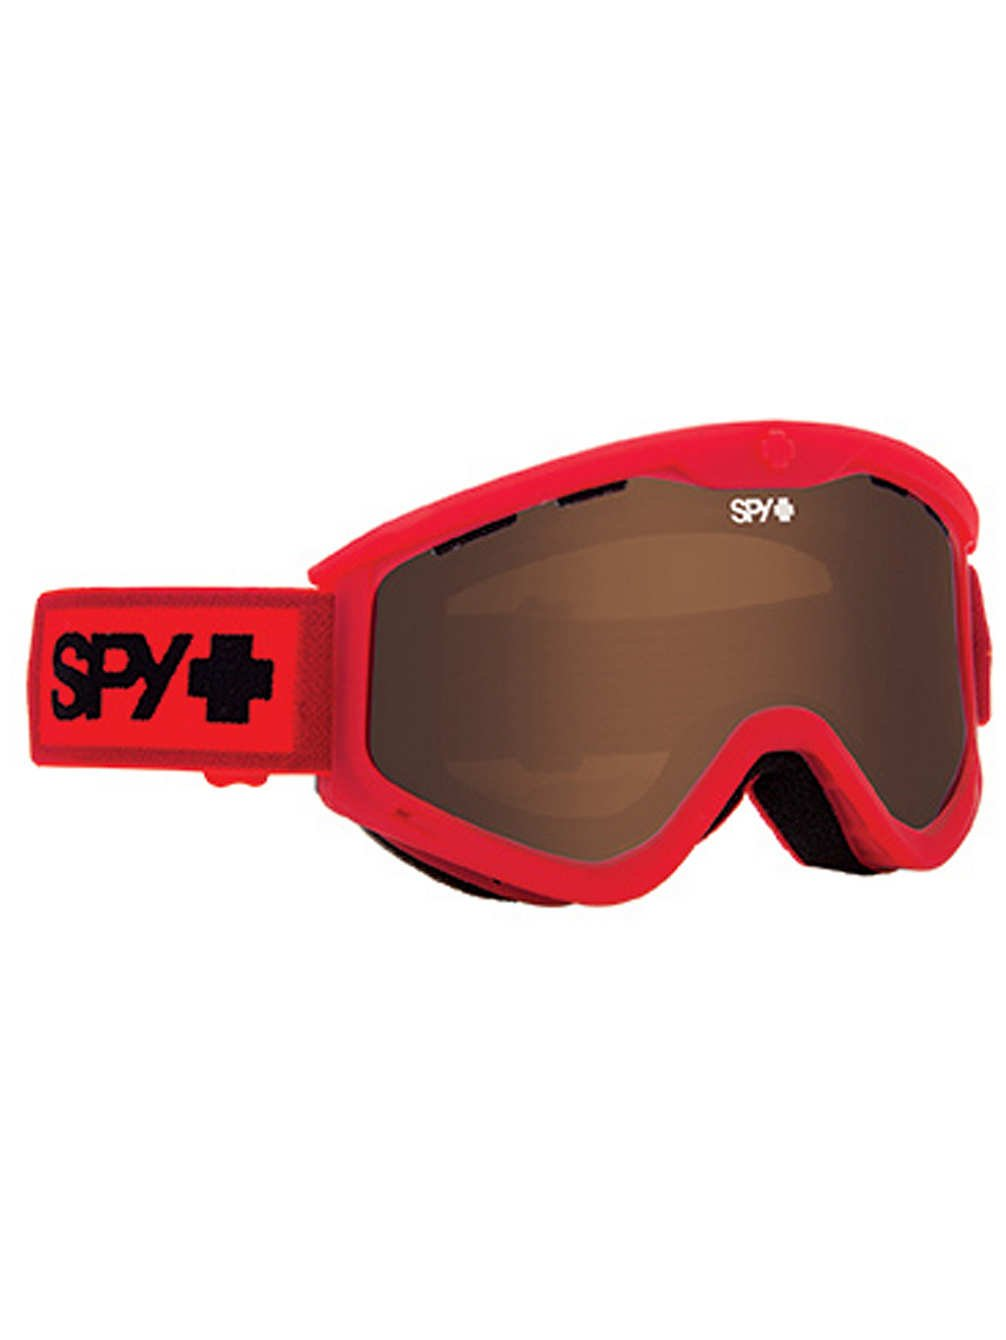 Spy Optic Elemental Red T3 Winter Sport Racing Snowmobile Goggles, Bronze, One Size